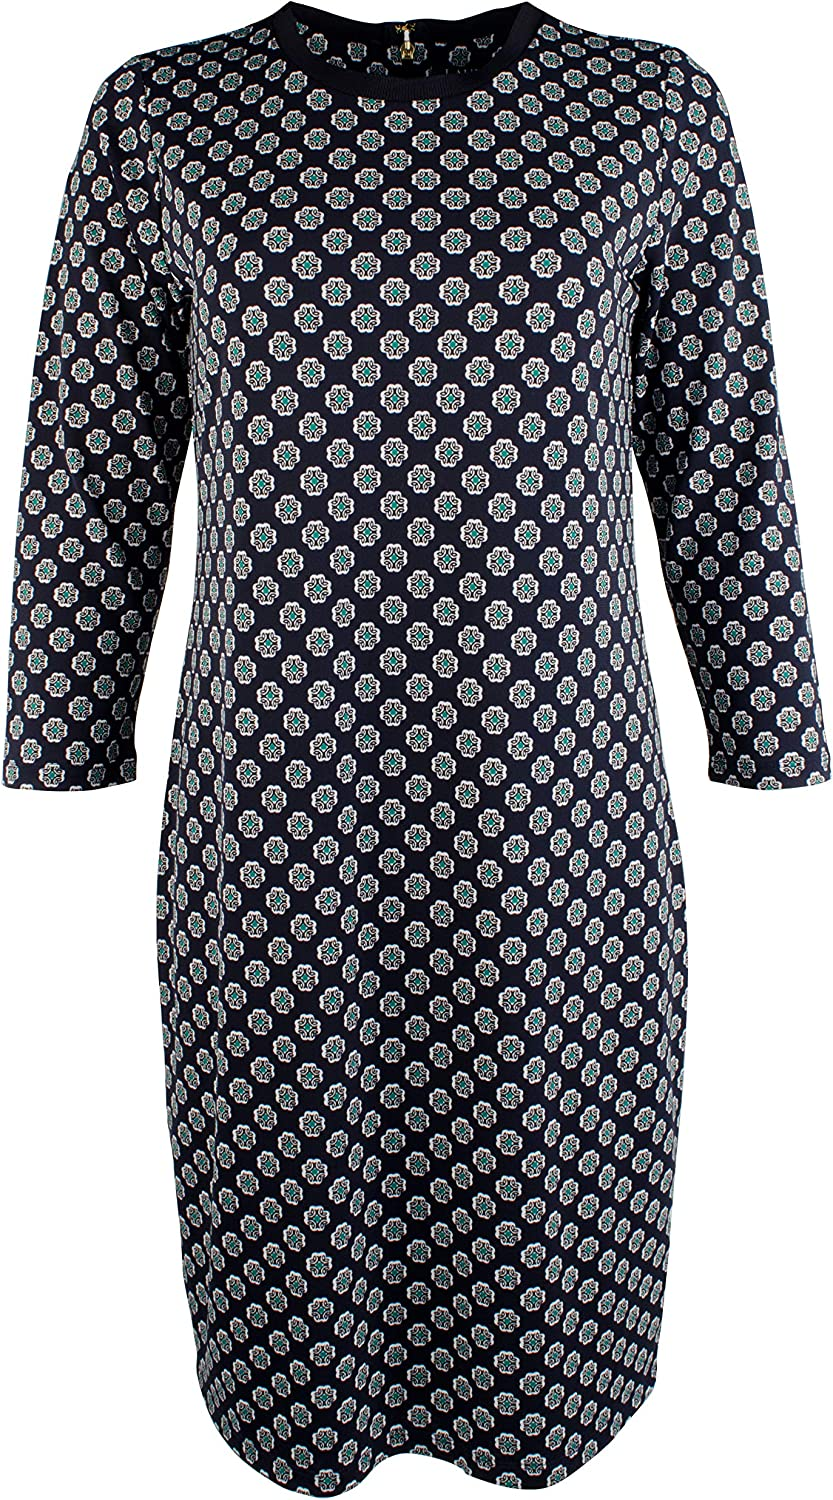 Lauren Ralph Lauren Women's Foulard Print Dress